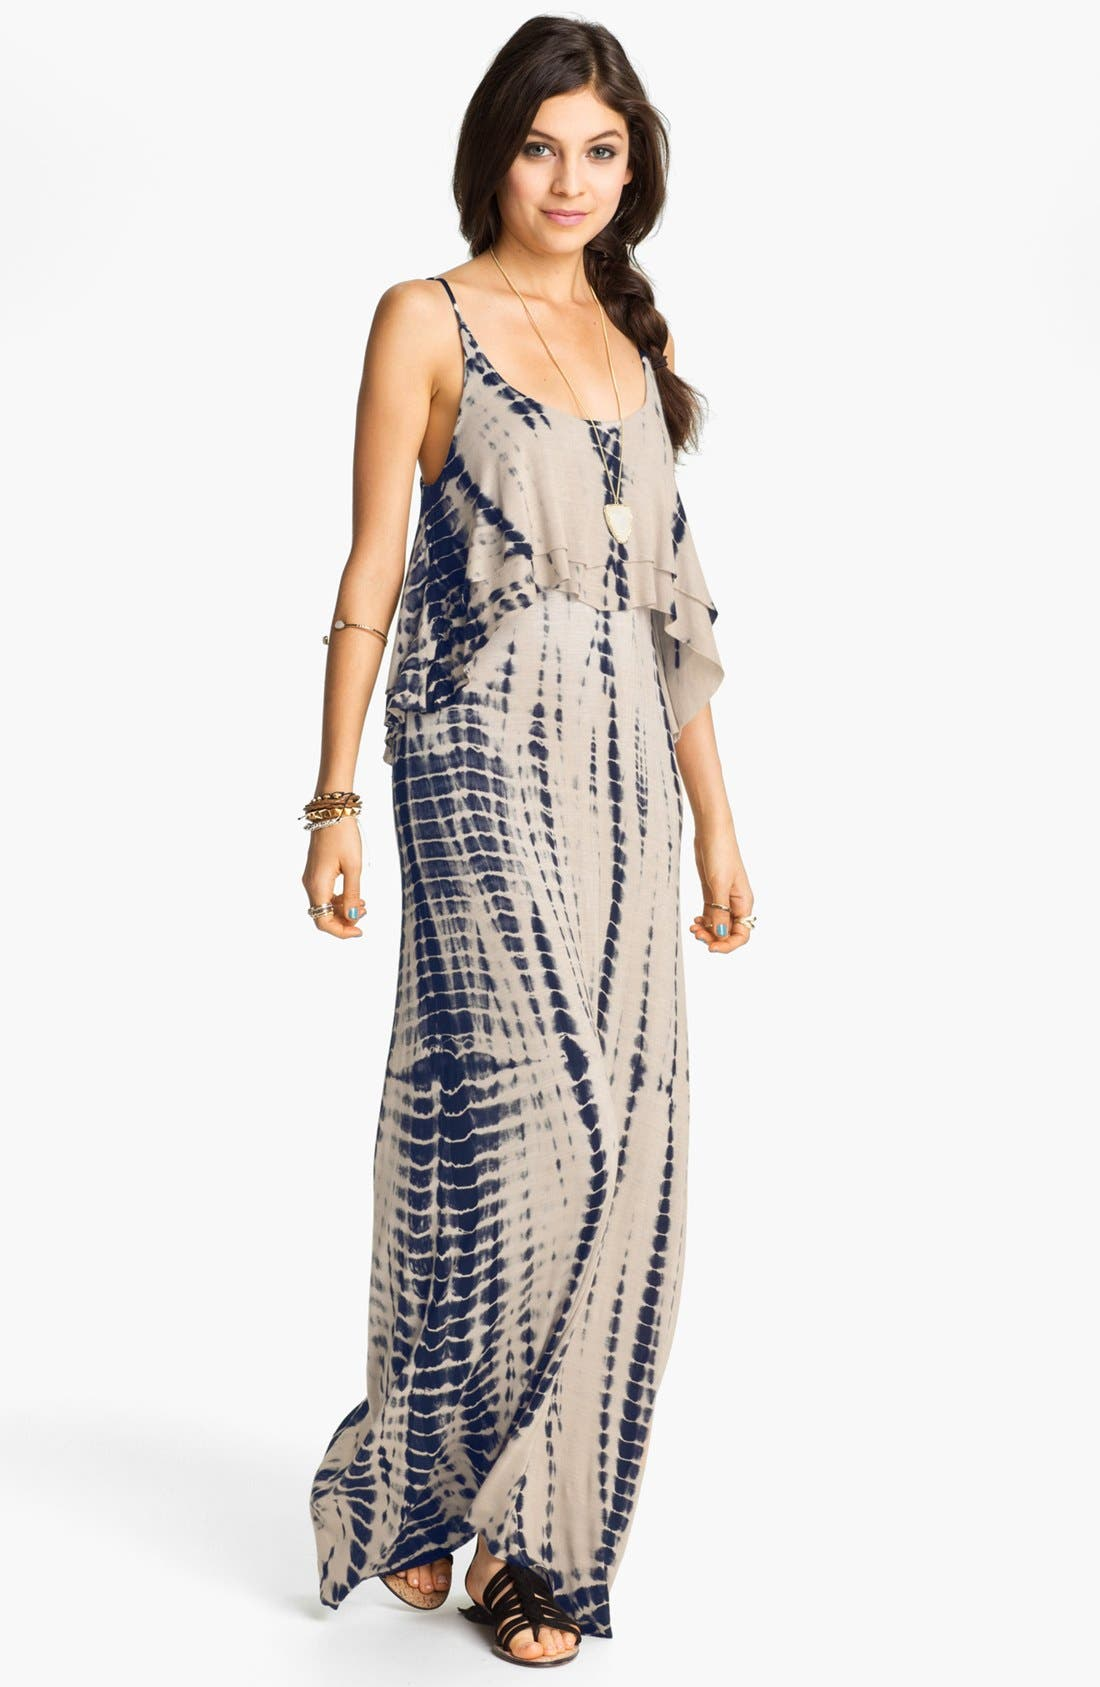 Alternate Image 1 Selected - Mimi Chica Tie Dye Cutout Back Tiered Maxi Dress (Juniors)